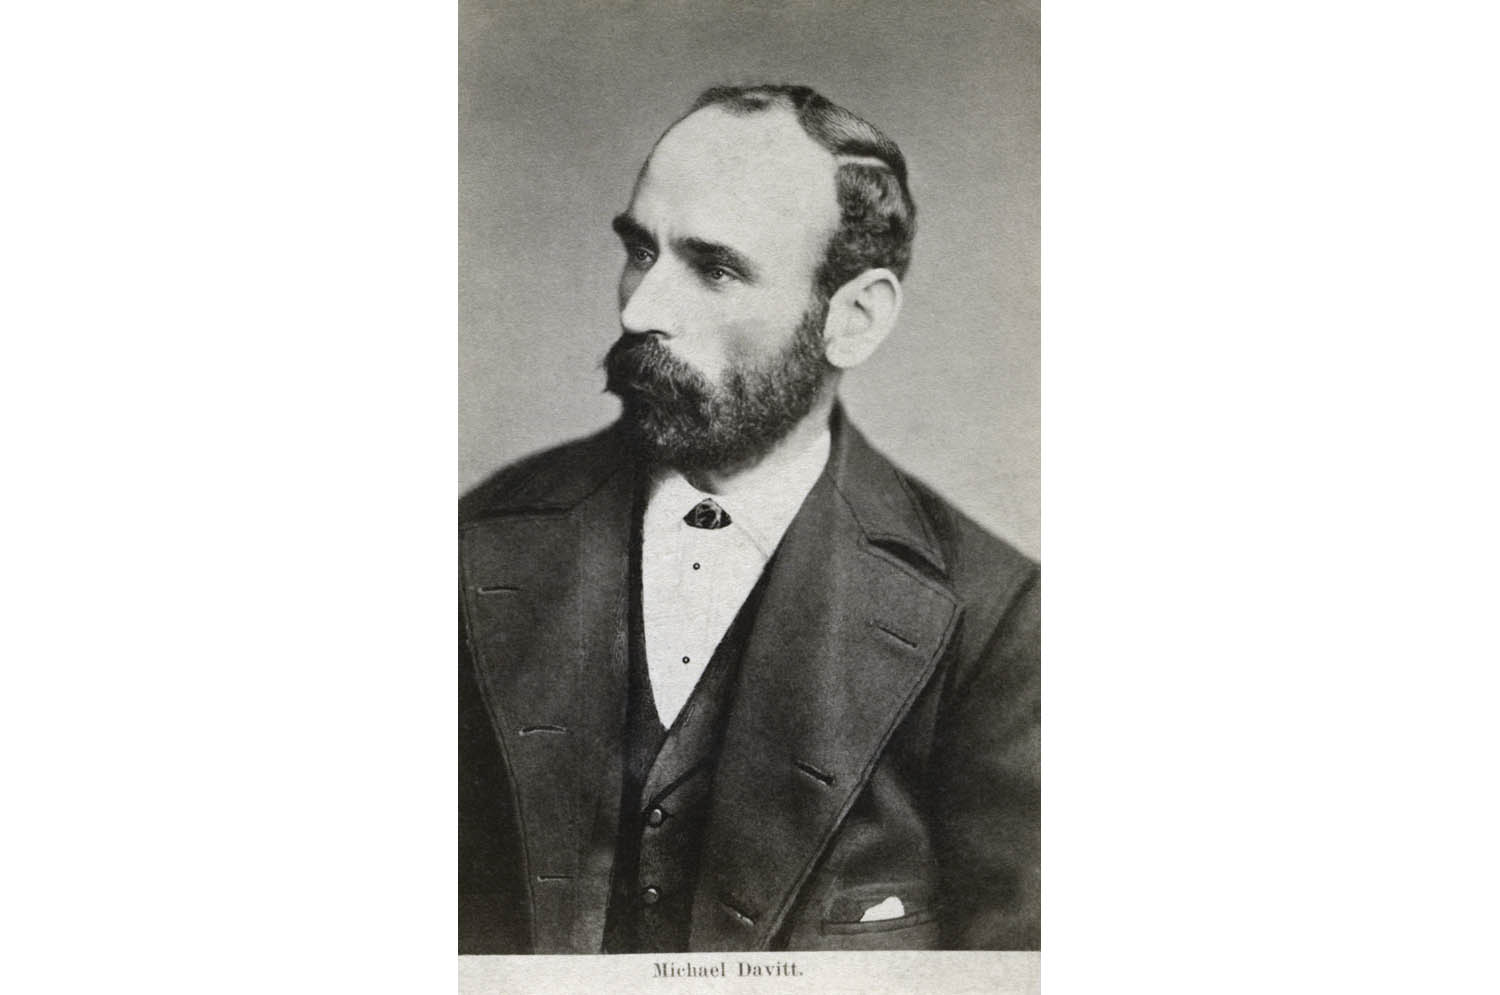 Michael Davitt, founder of the Irish National Land League.